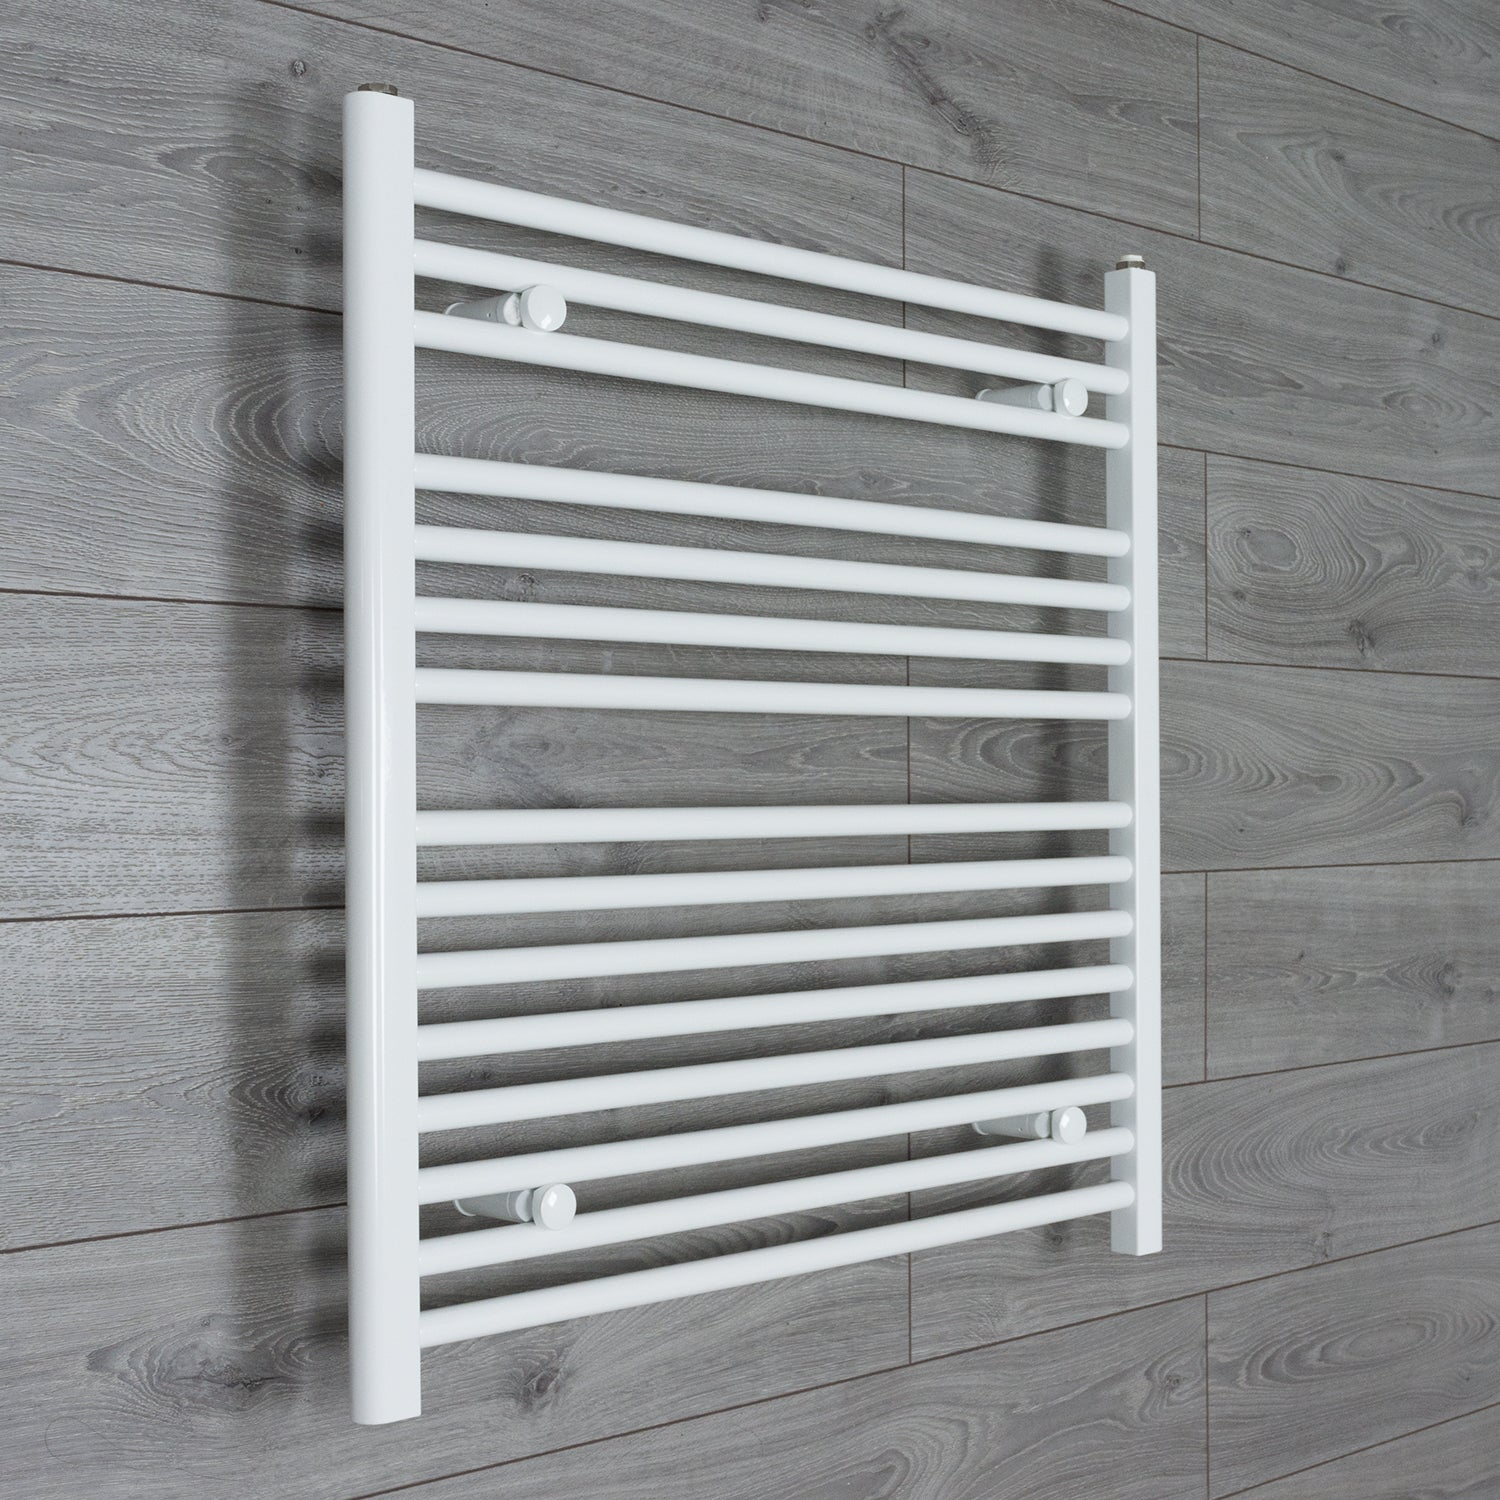 850mm Wide 800mm High Flat White Heated Towel Rail Radiator HTR,Towel Rail Only